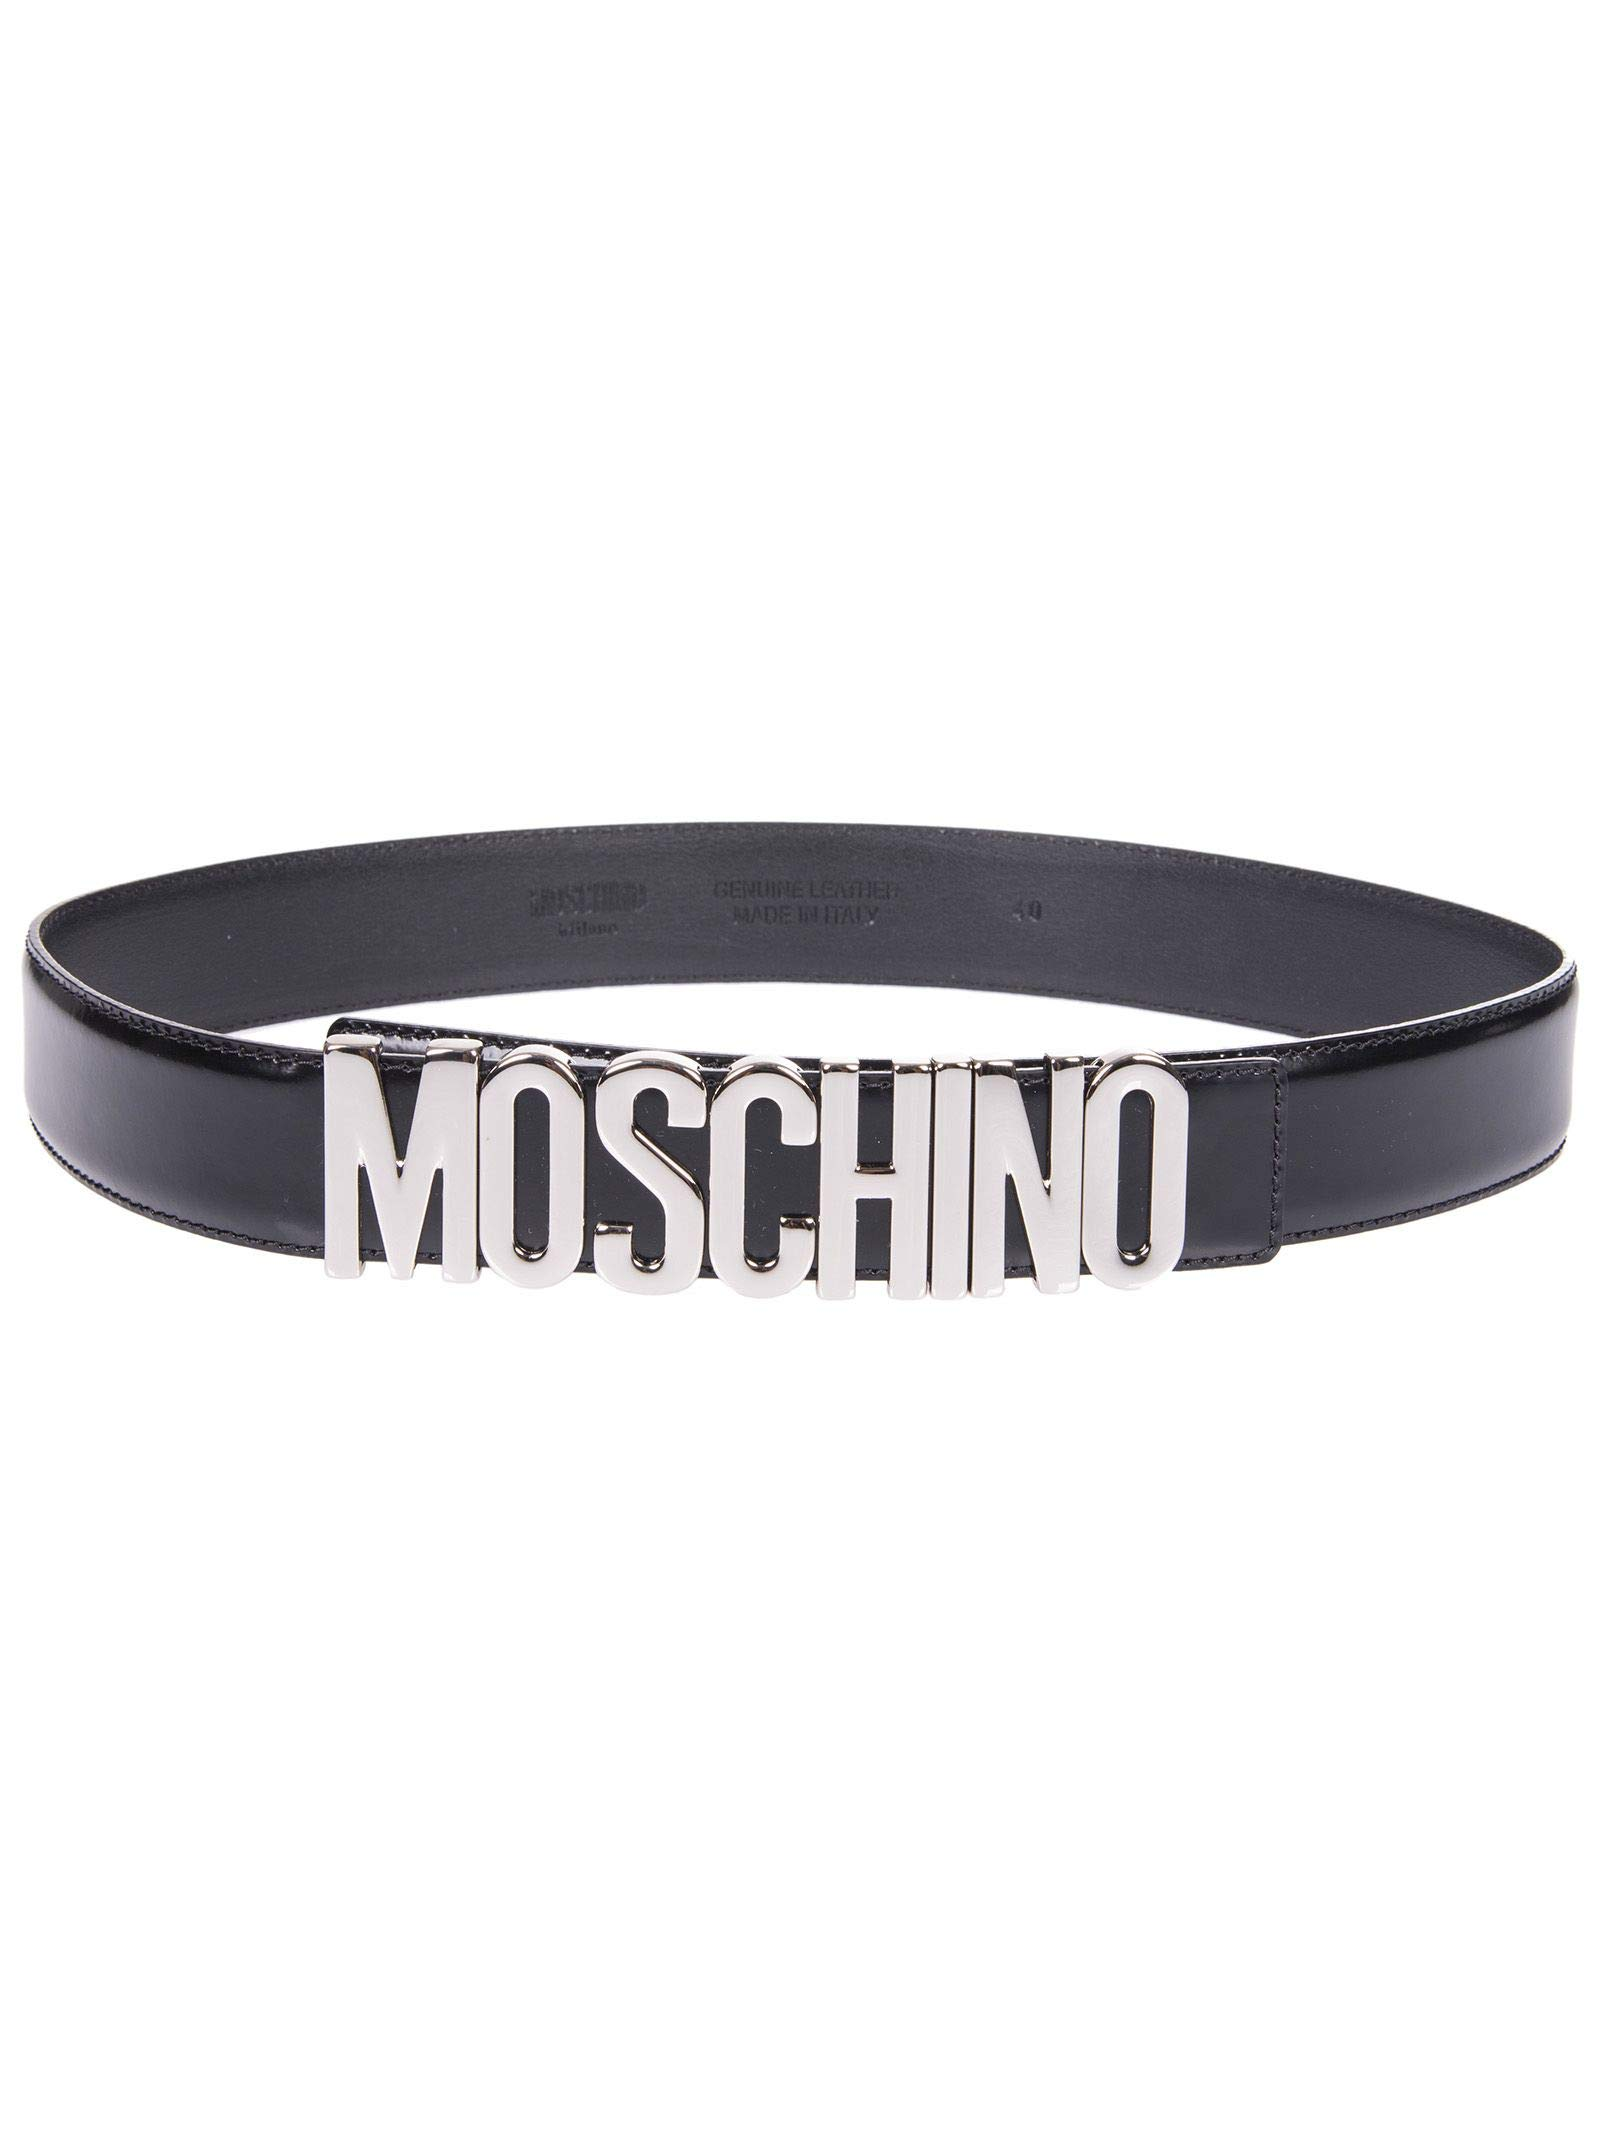 Moschino Women's A801280071555 Black Leather Belt